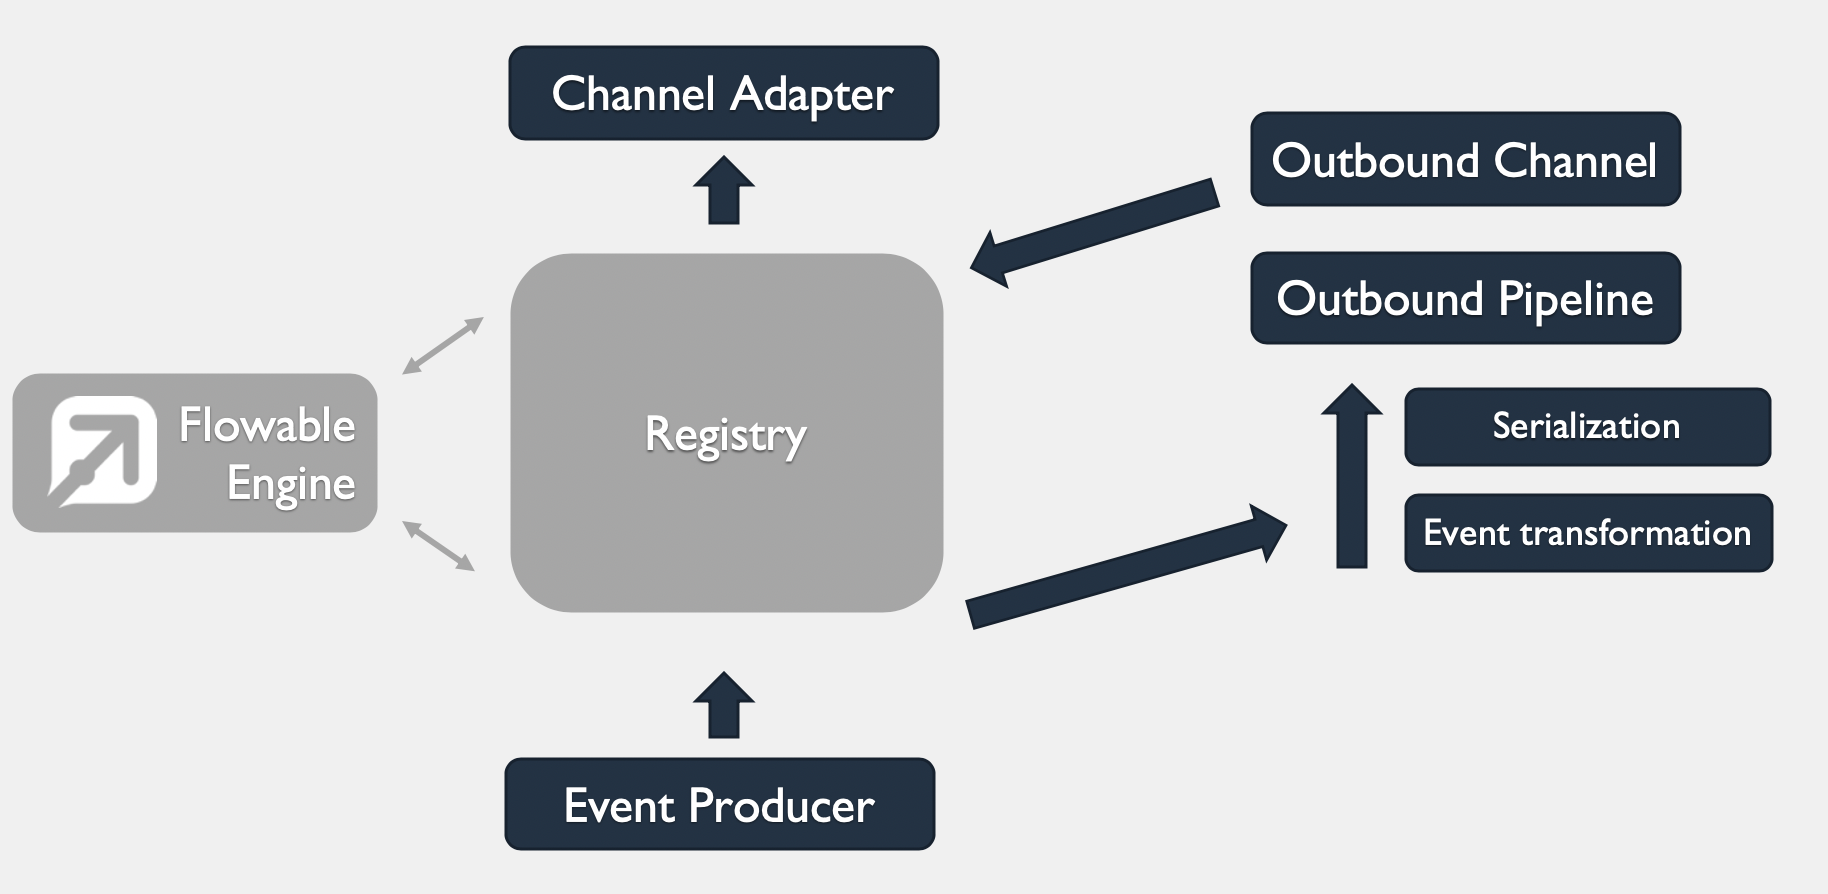 Outbound channel pipeline